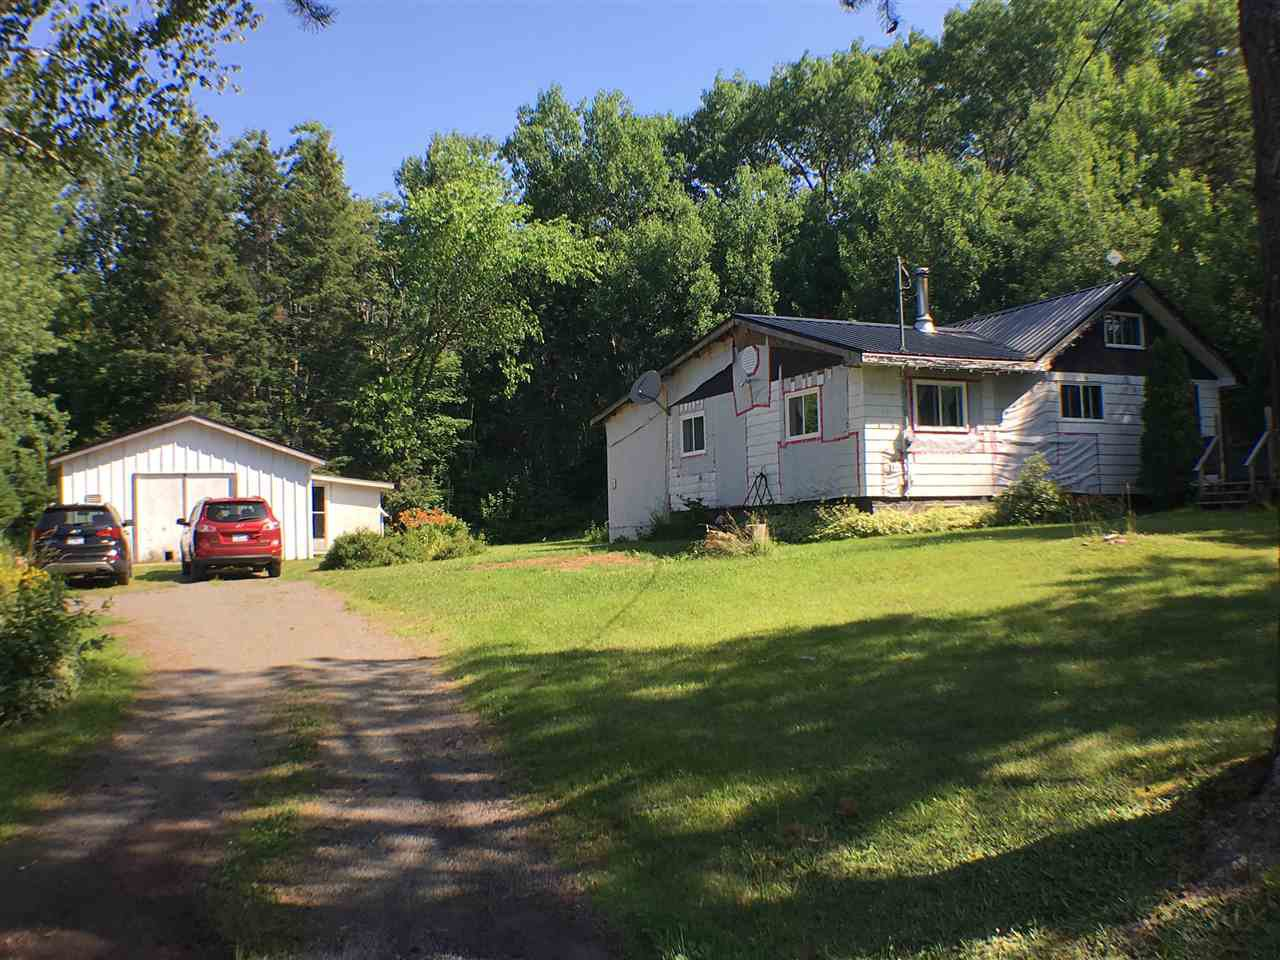 Main Photo: 53 Springville Road in Springville: 108-Rural Pictou County Residential for sale (Northern Region)  : MLS®# 201918411